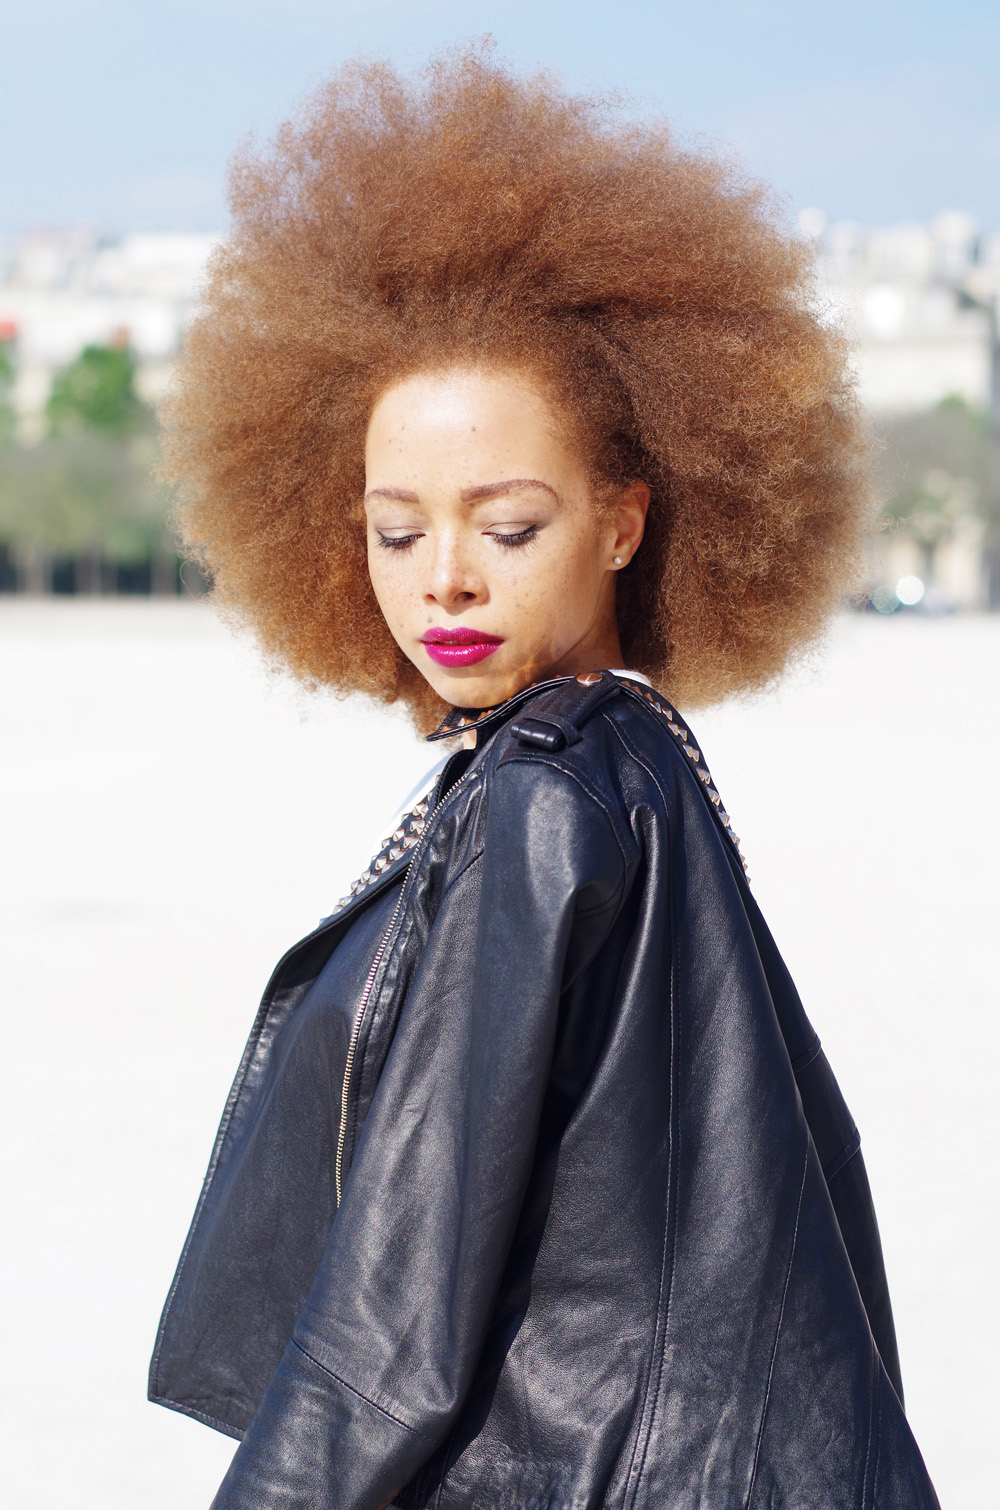 fatimayarie-afro-redhair-freckles-fashionblog-leatherjacket-paris-mixedgirl-imgp9282